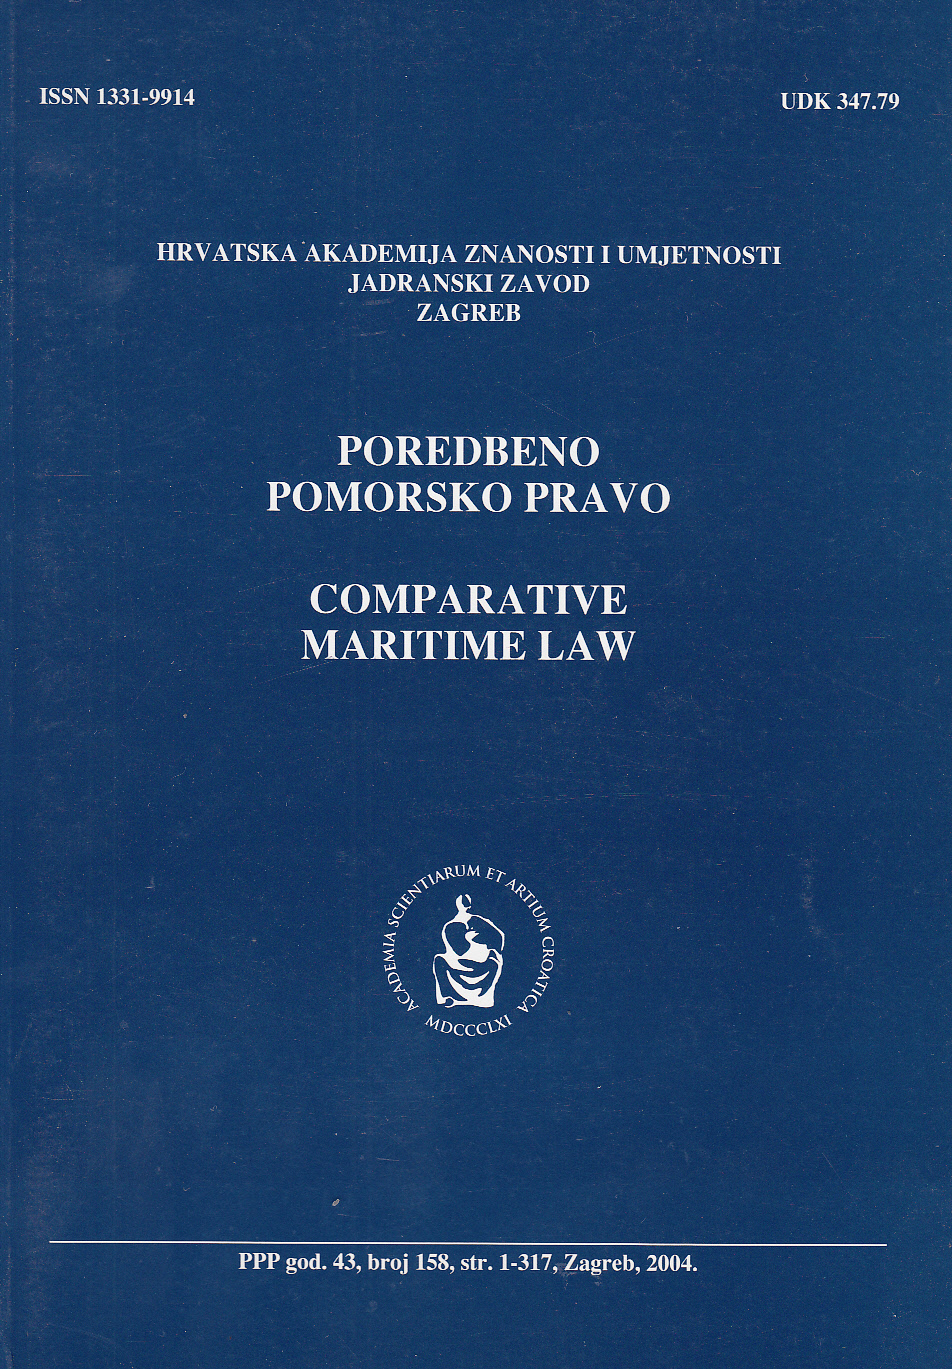 Documents of title in carriage of goods by sea under English law : Legal nature and possible future directions Cover Image